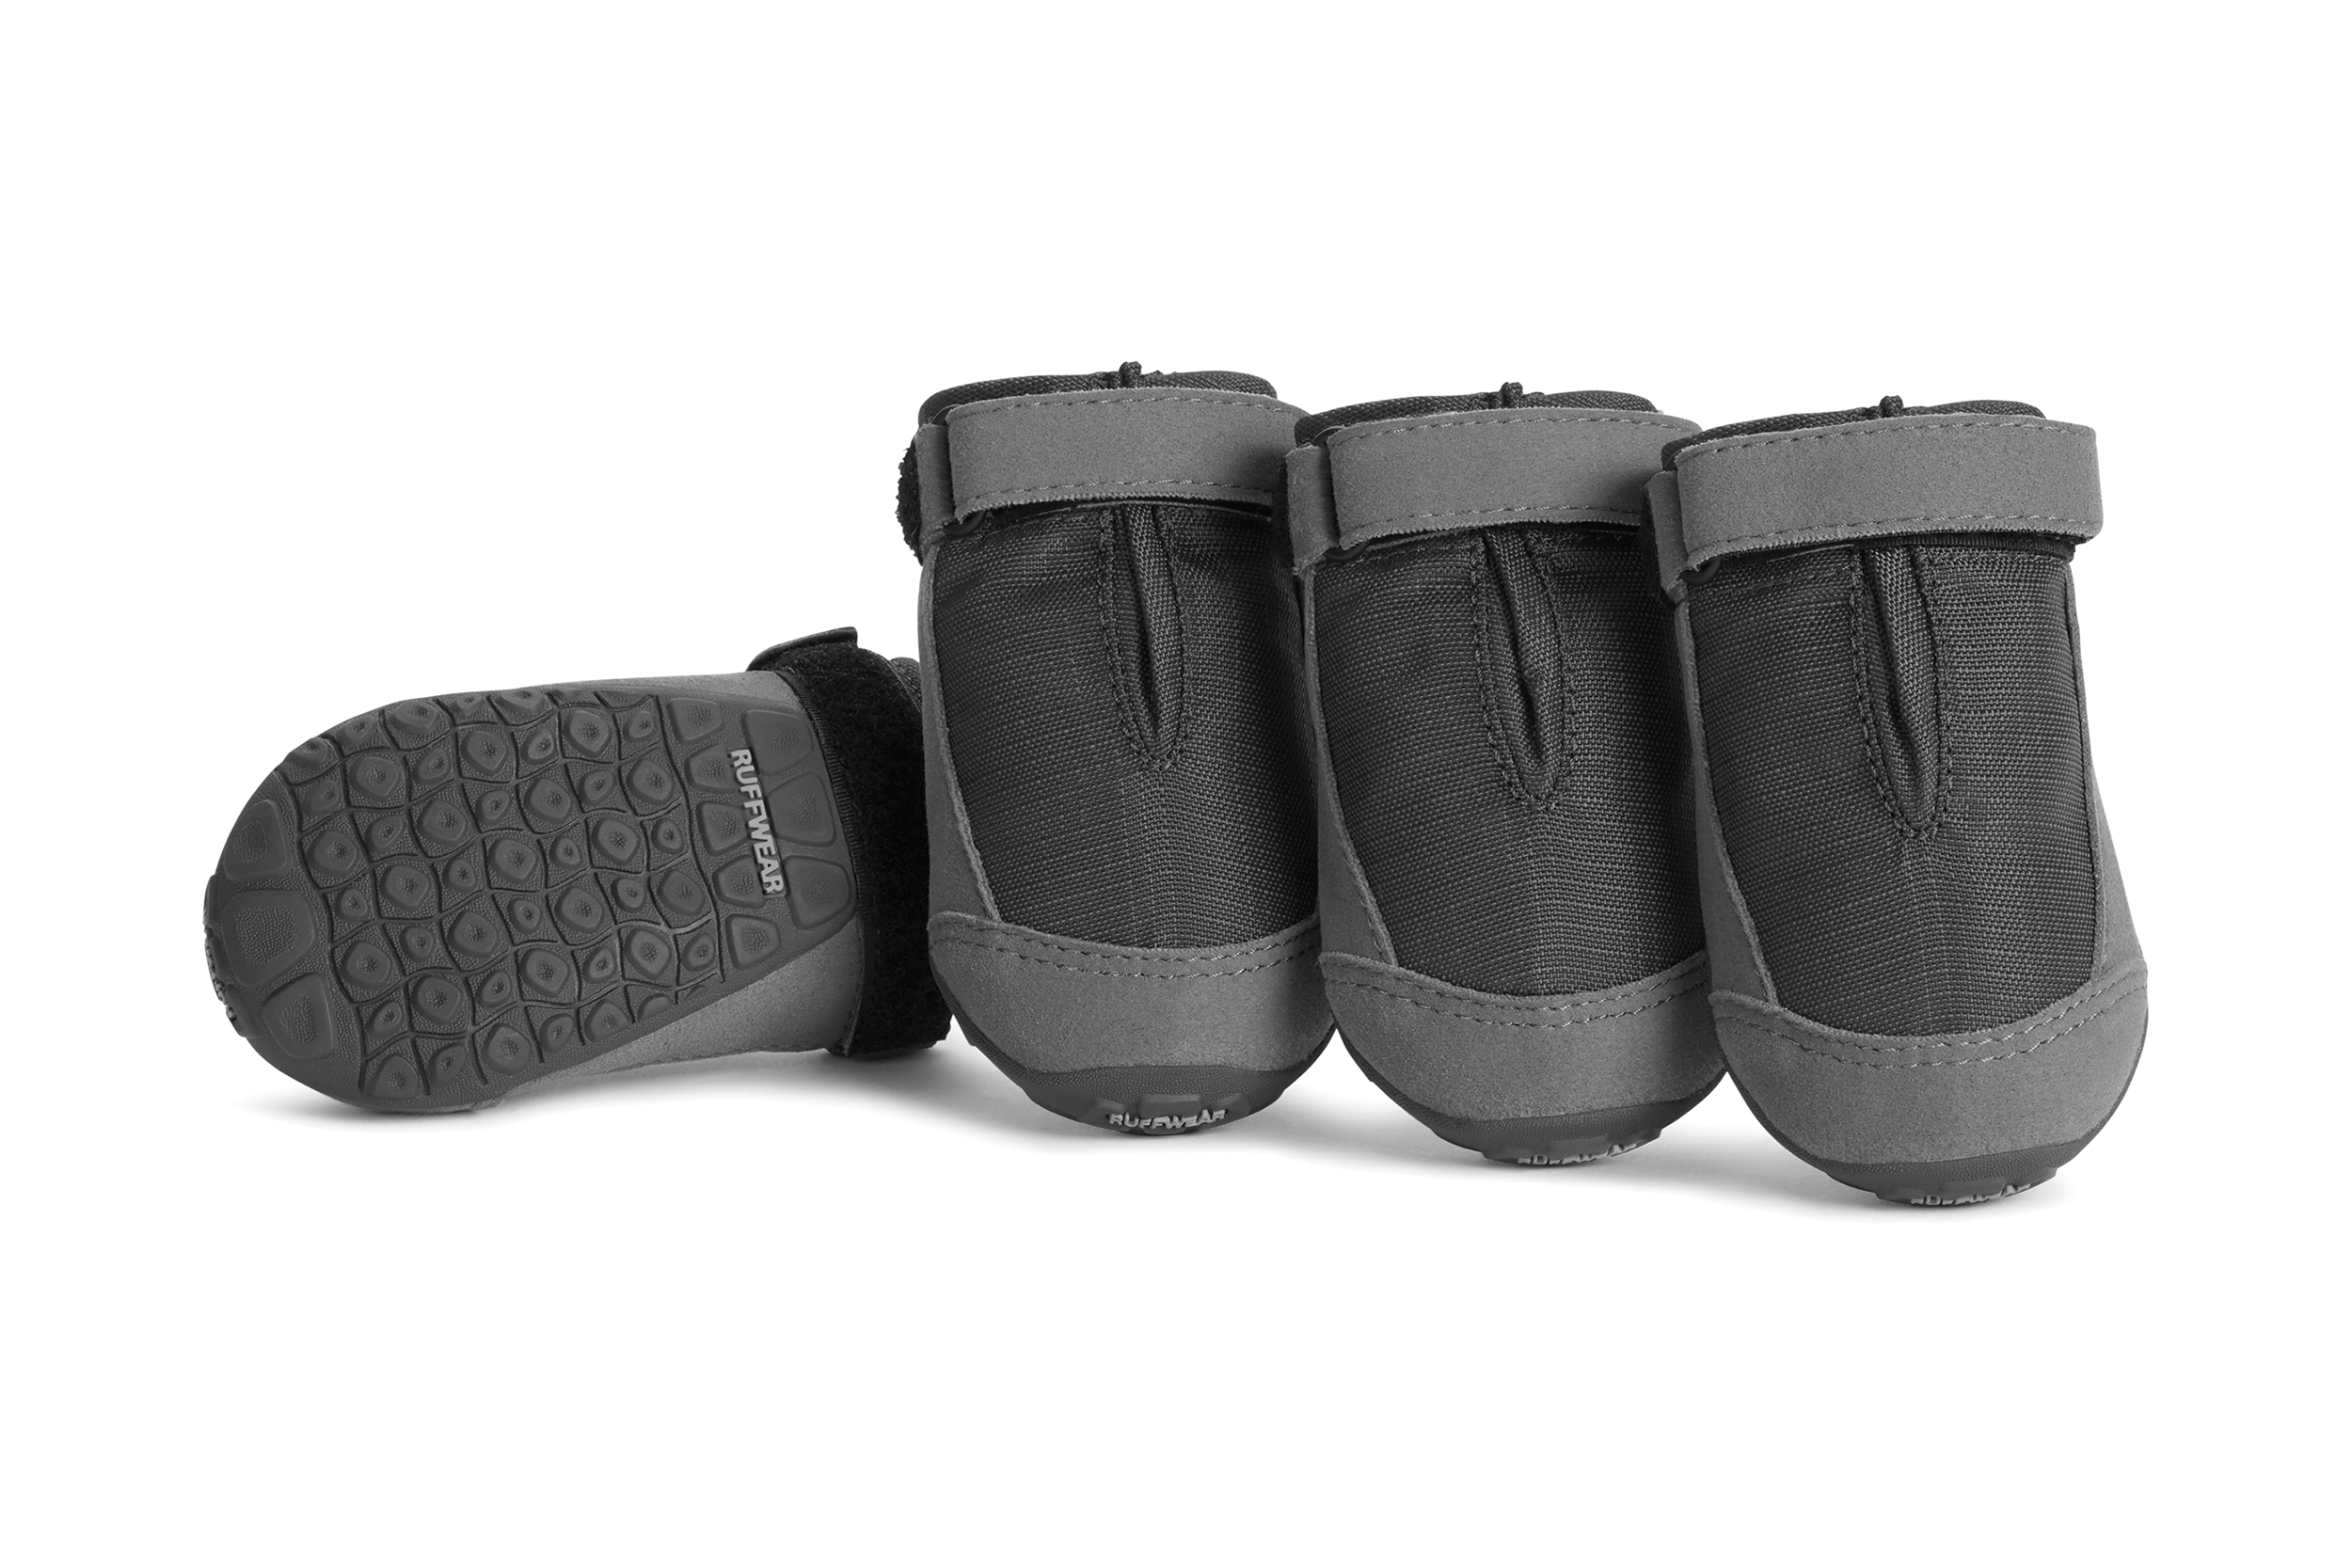 Ruffwear Summit Trex Shoes (Set of Four)